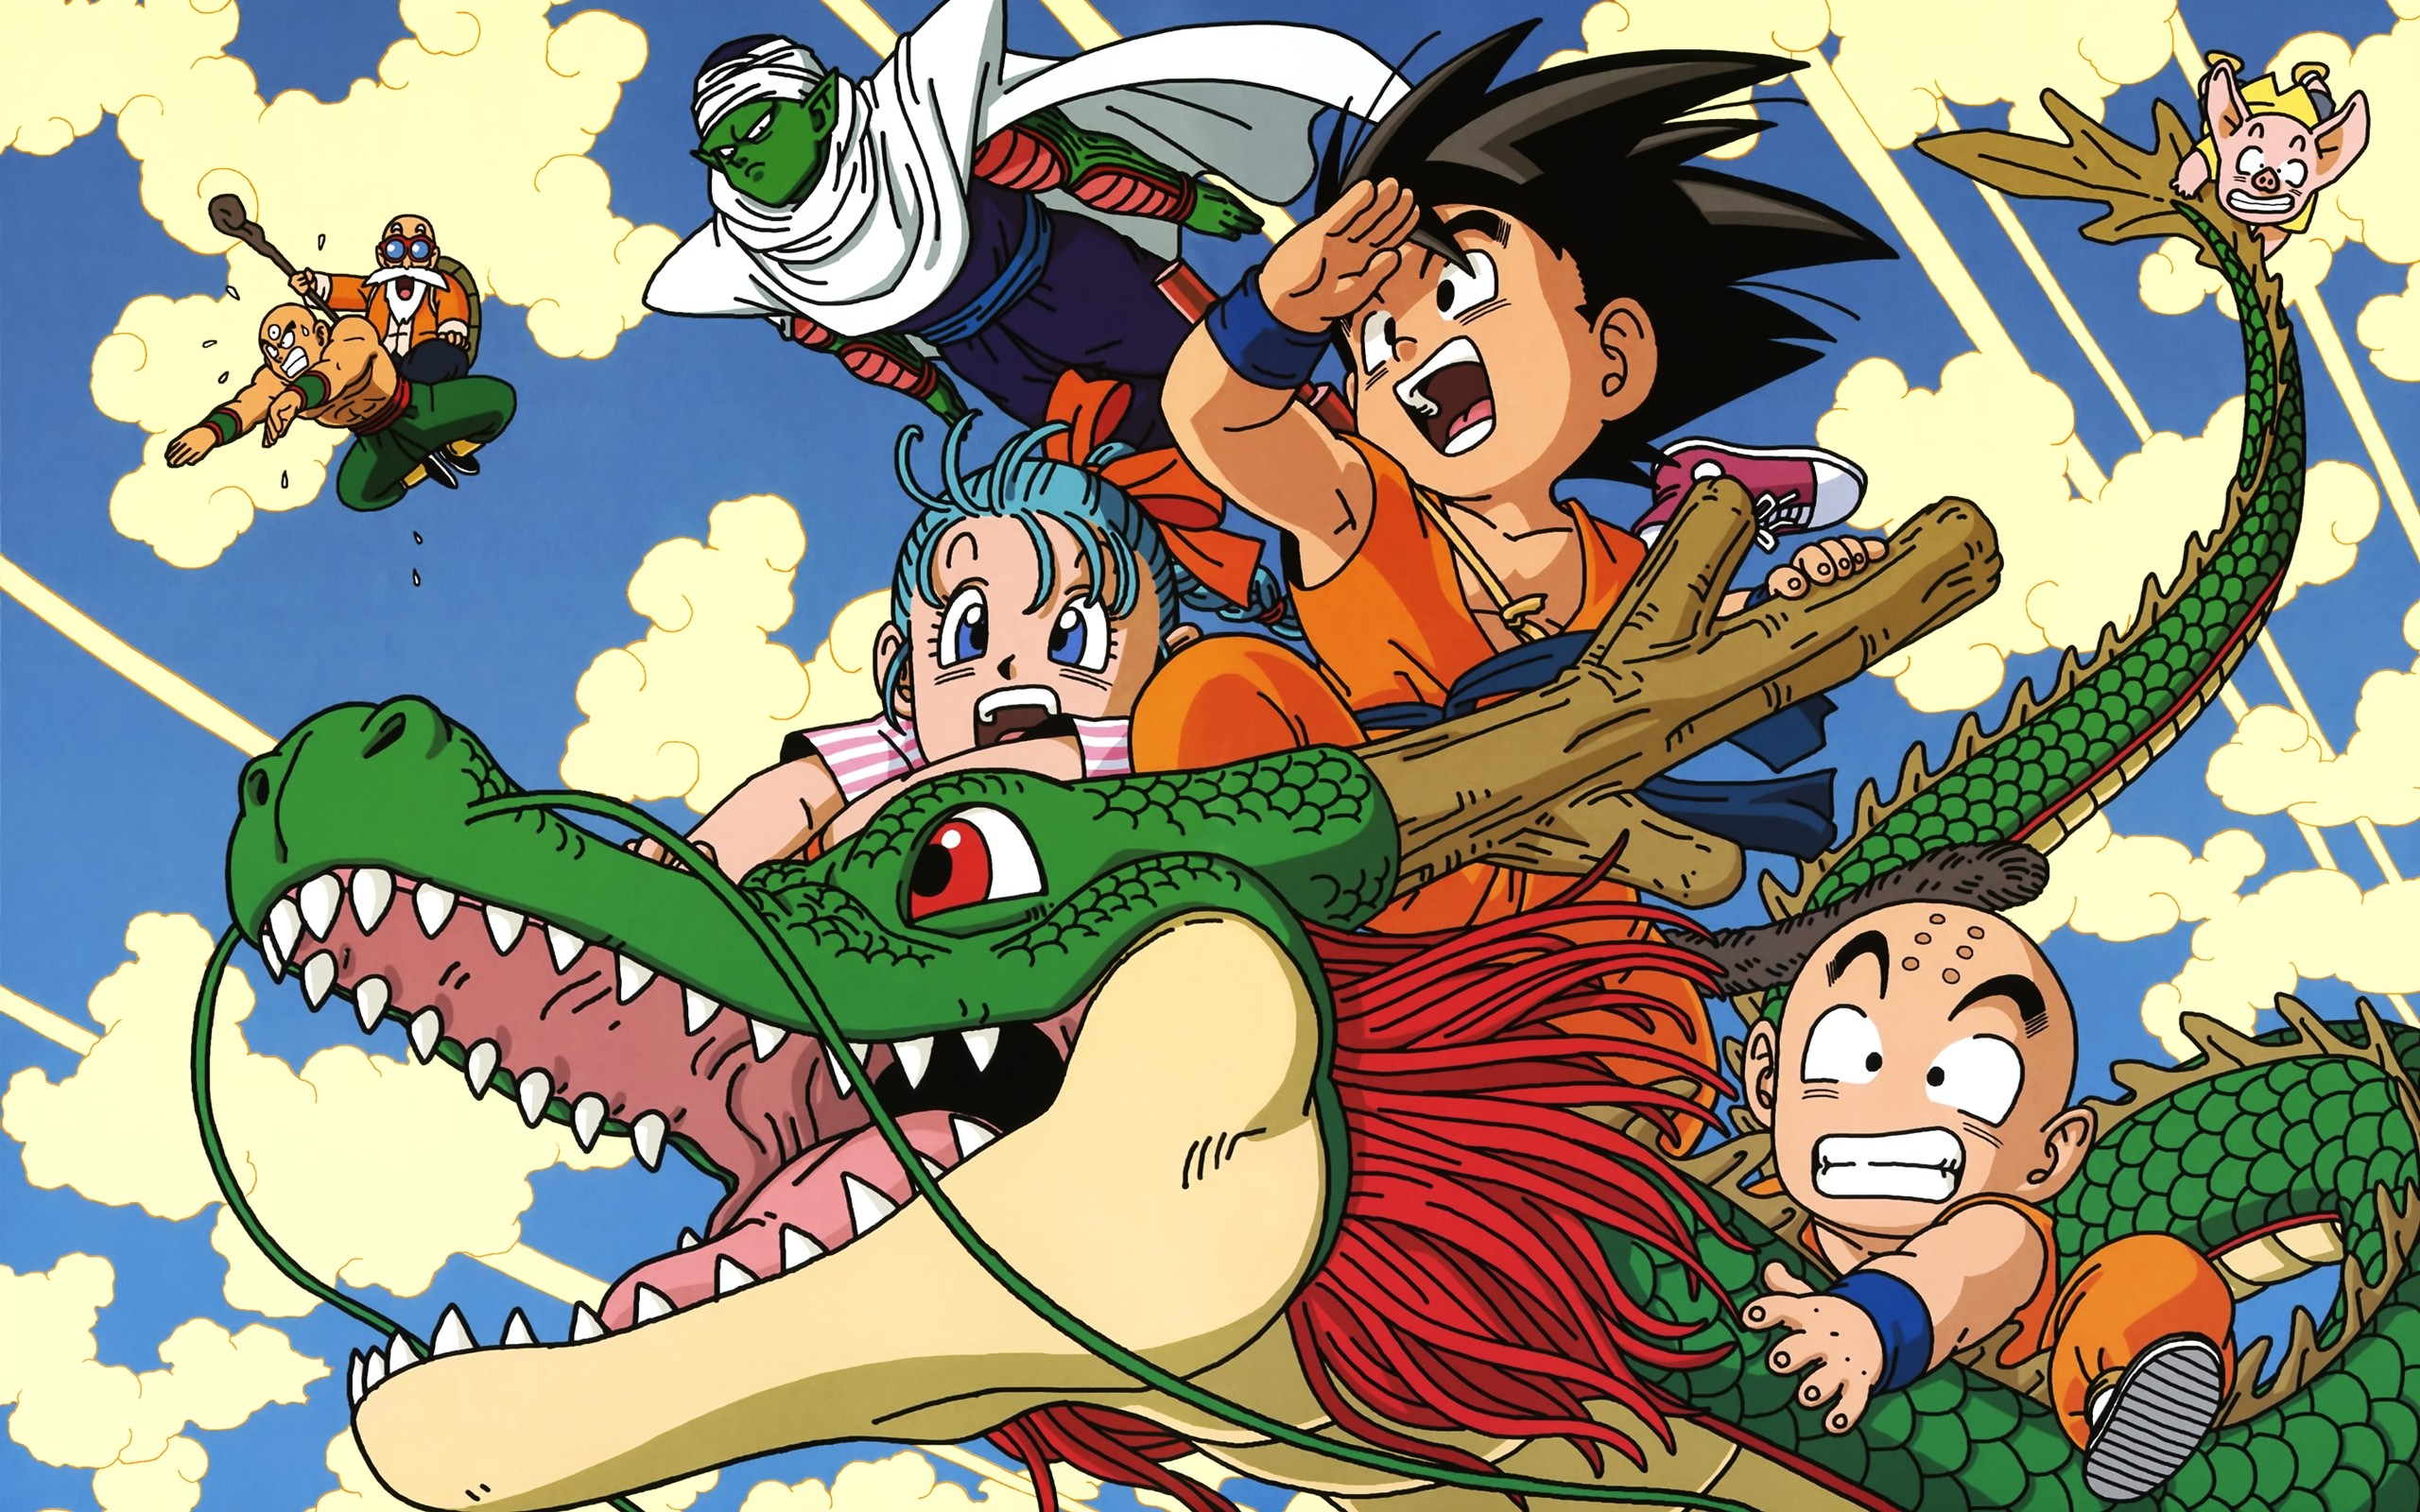 Cool Wallpaper High Quality Dbz - 202864-top-dbz-background-2560x1600-for-iphone-5s  Perfect Image Reference_12723.jpg